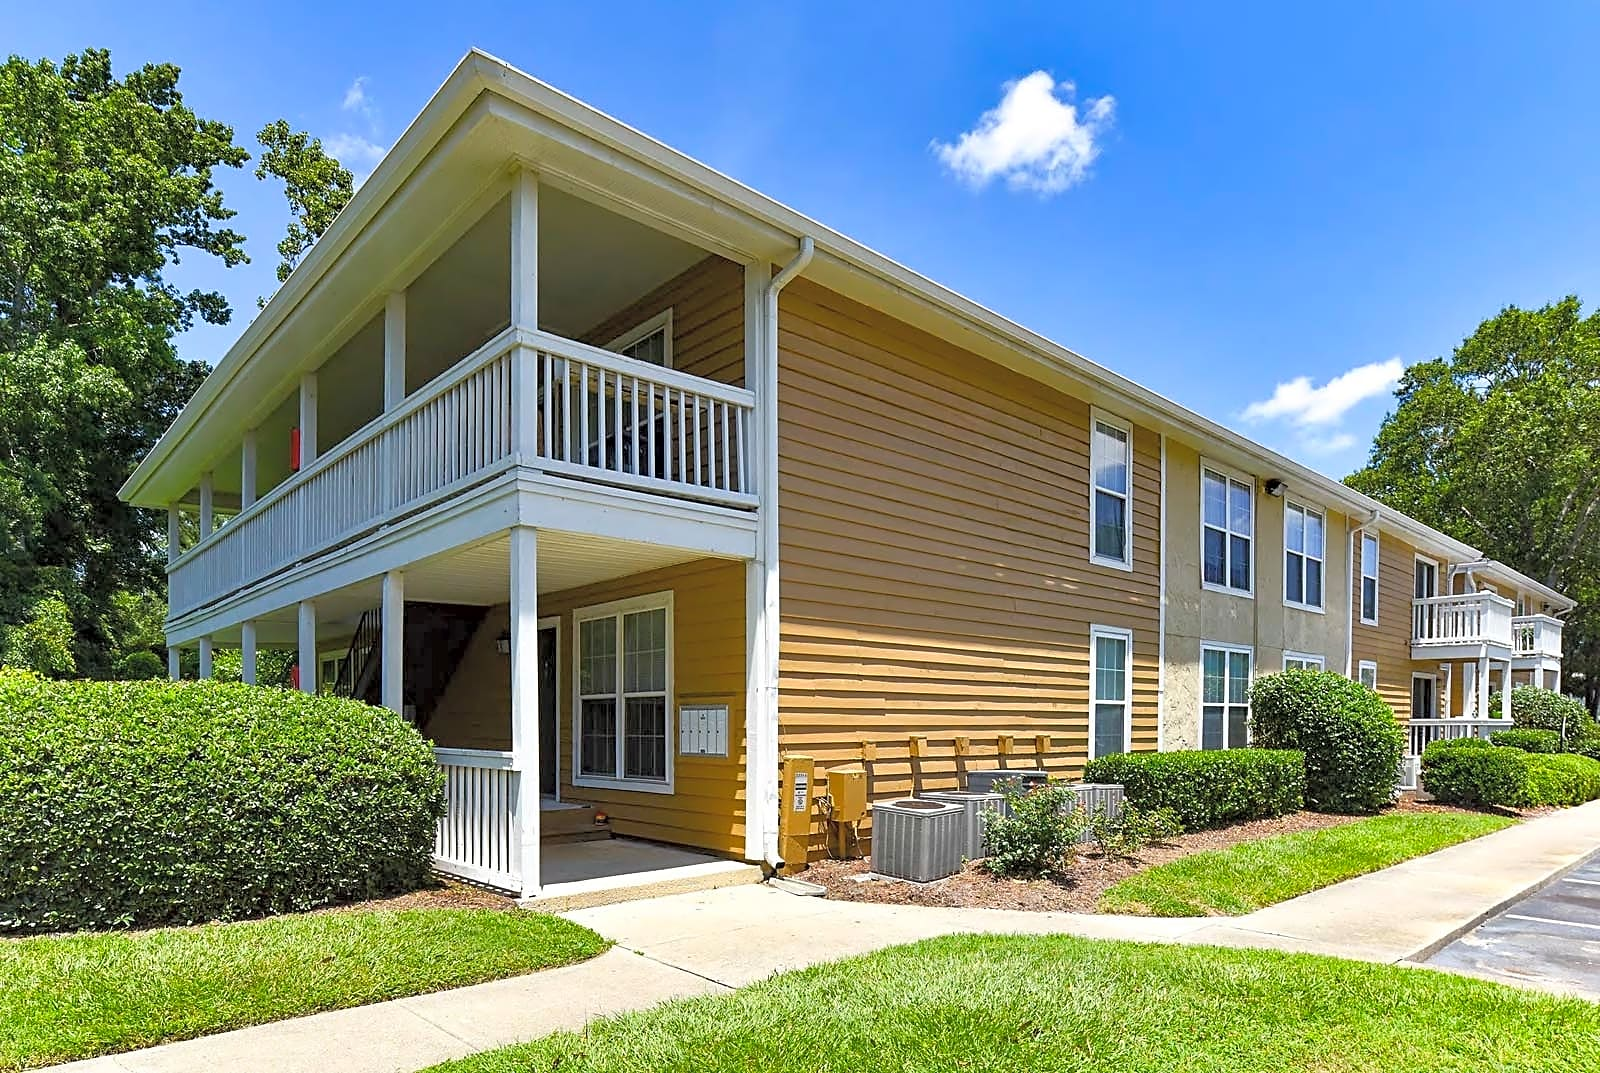 Apartments Near UNCW The Creek for University of North Carolina-Wilmington Students in Wilmington, NC